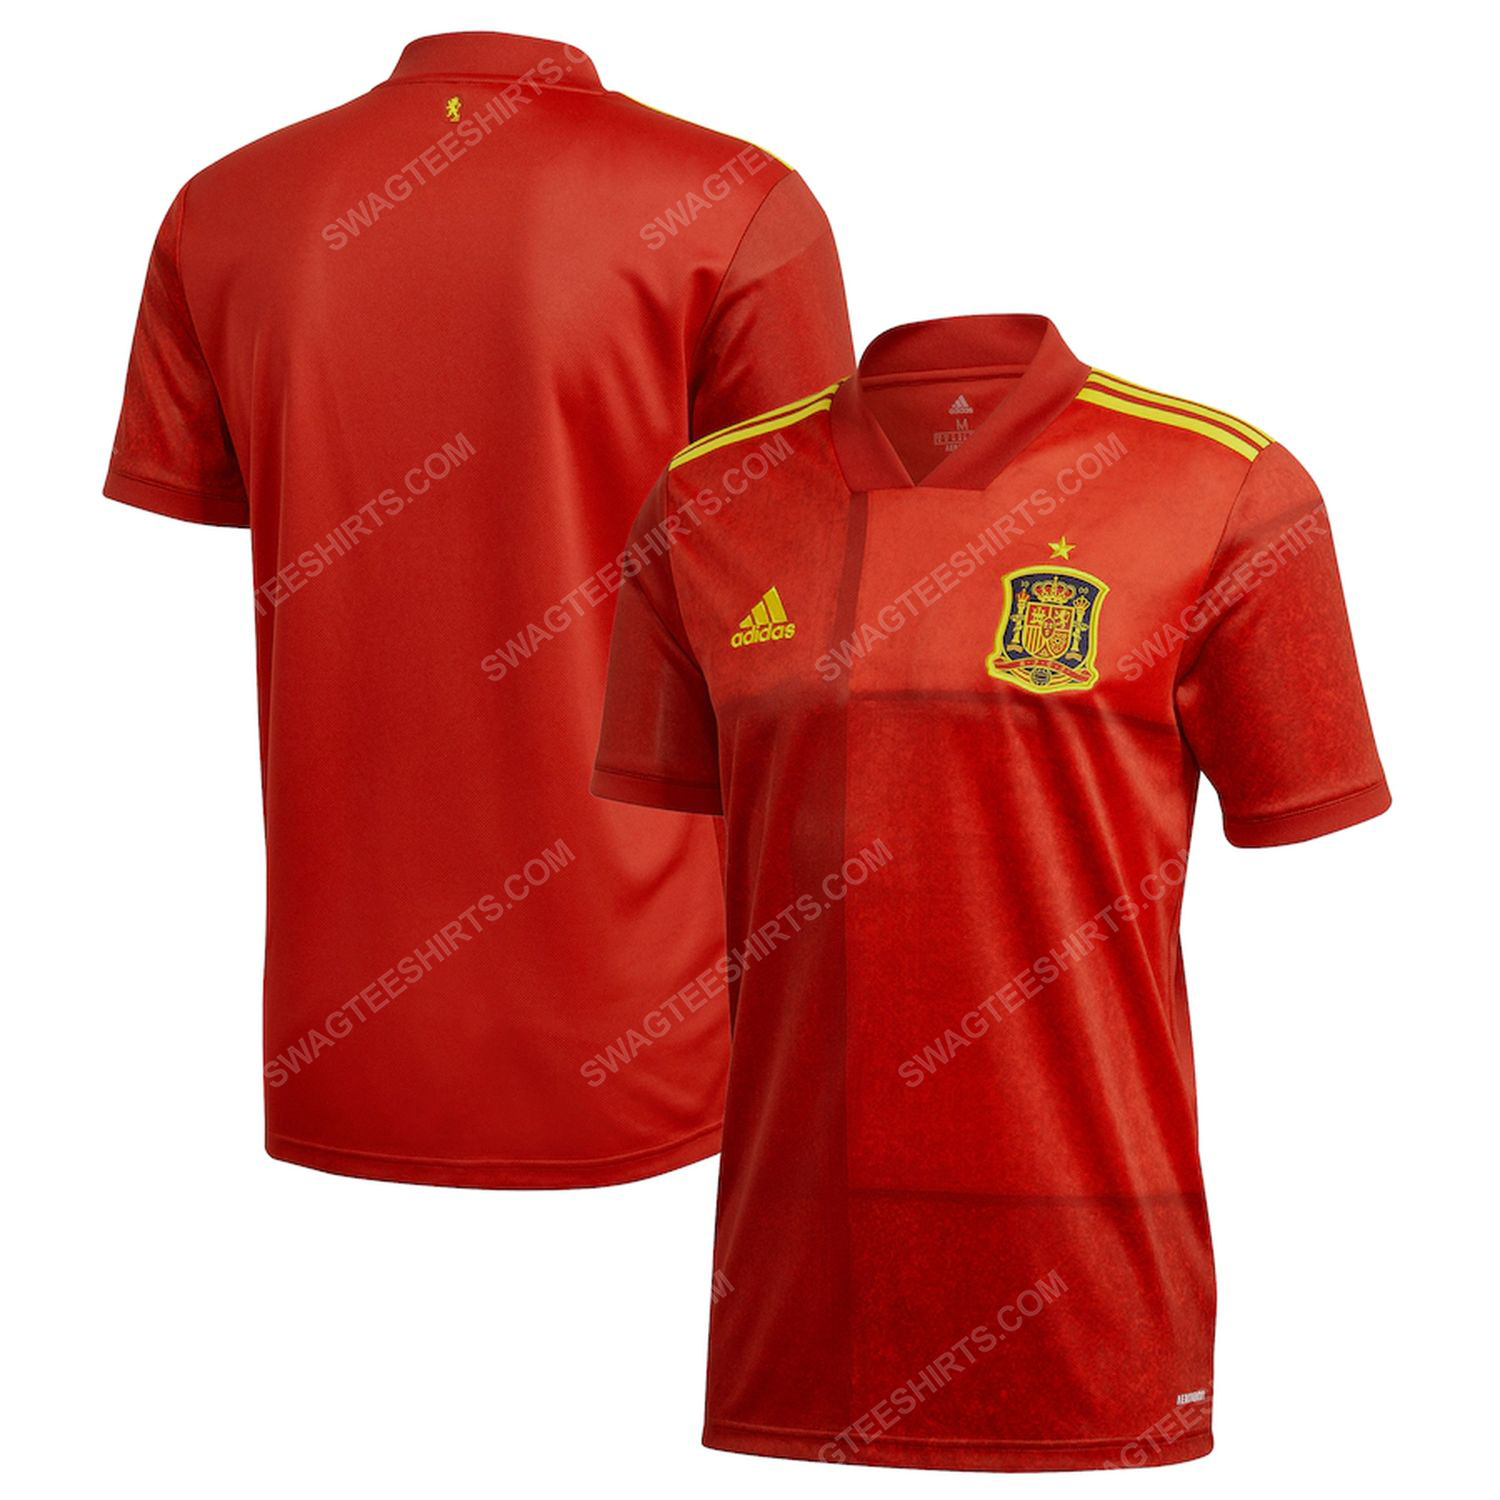 Spain national football team all over printed football jersey